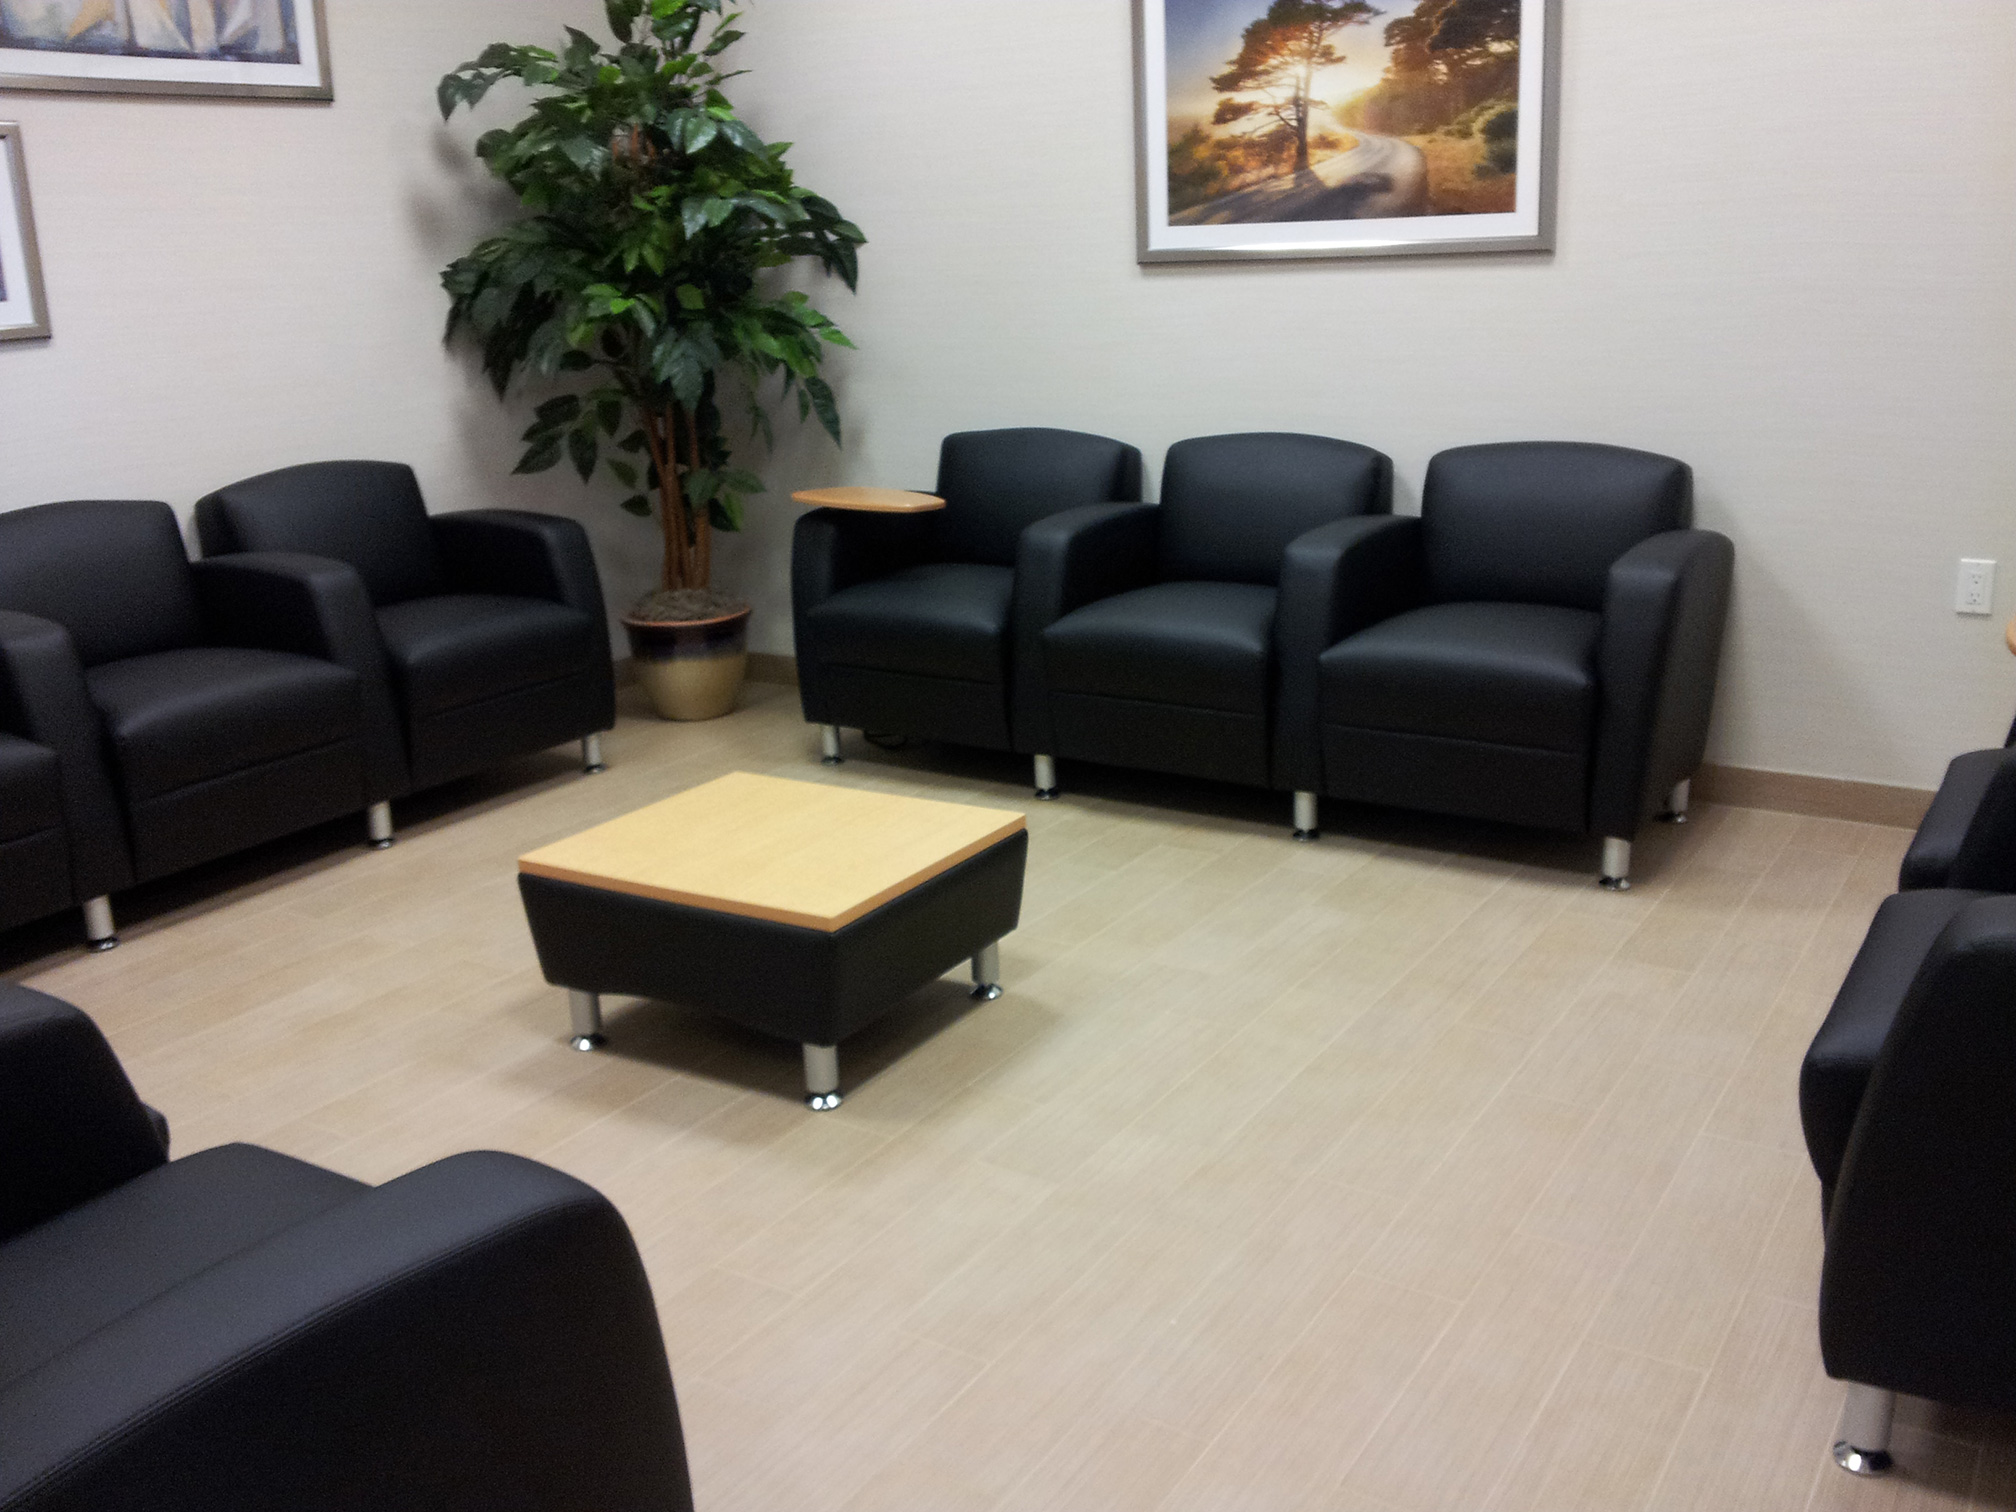 office-furniture-near-me-in-fort-lauderdale-florida.jpg